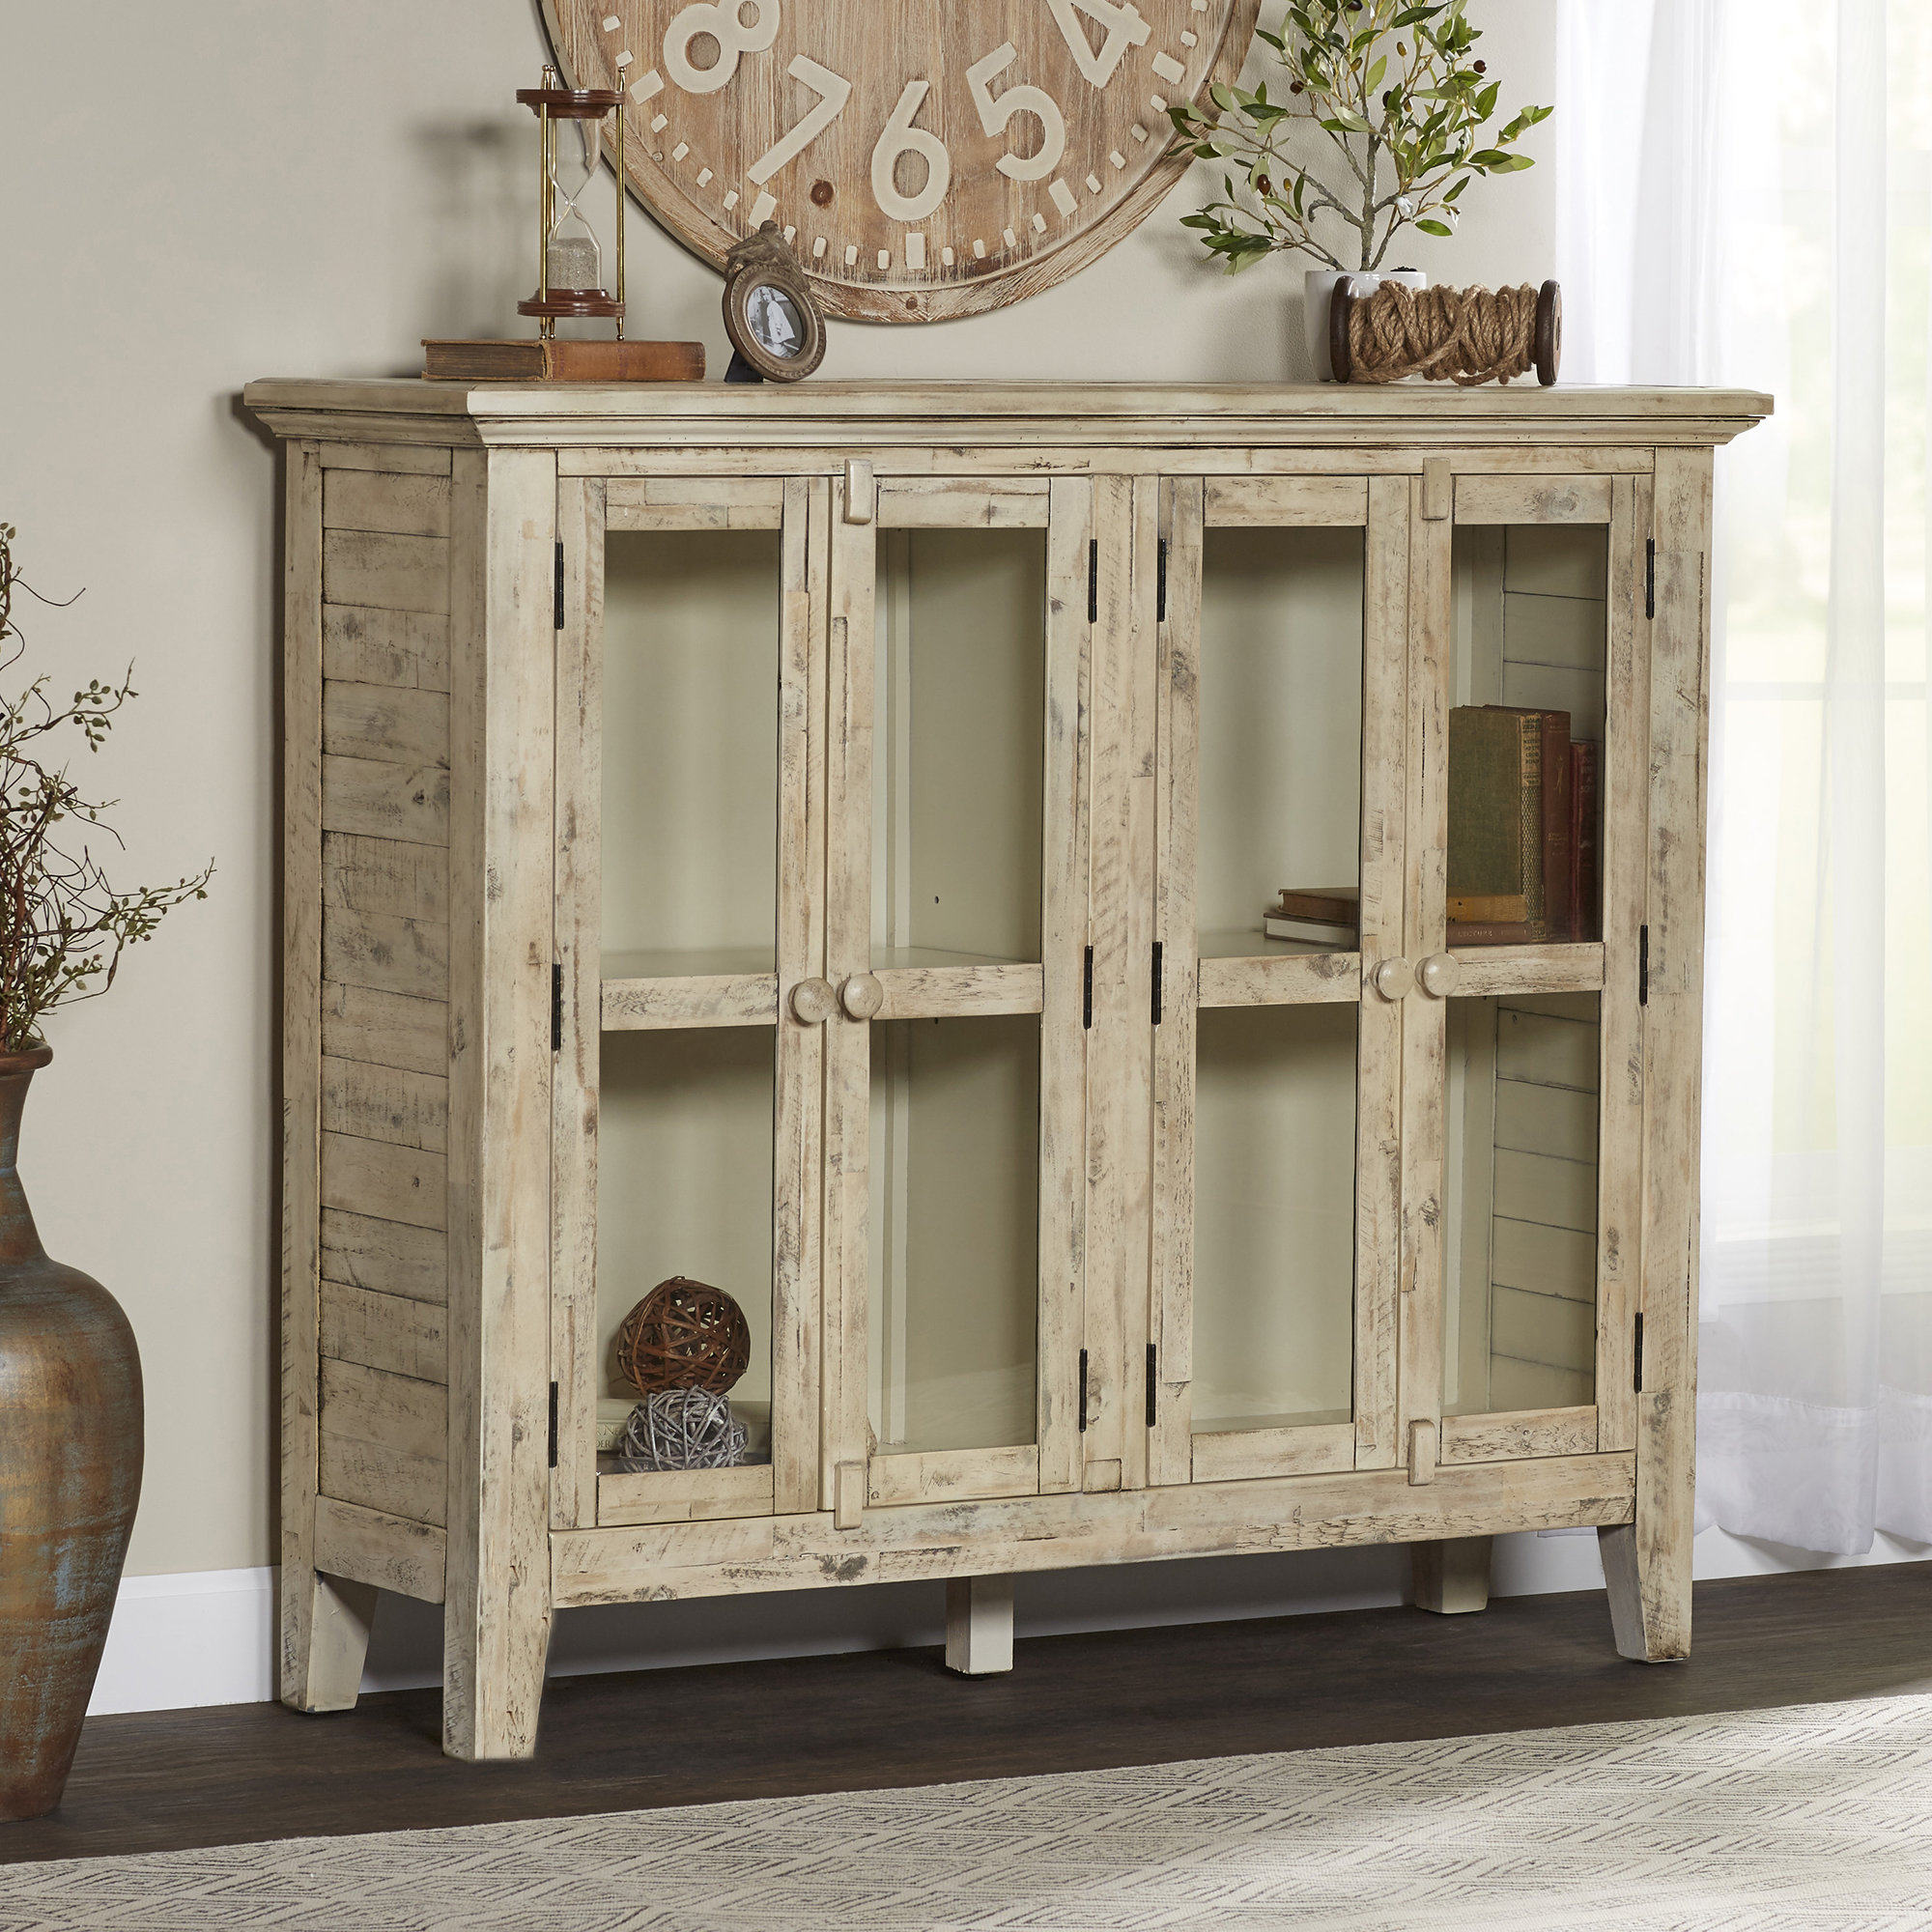 Eau Claire 4 Door Accent Cabinet Intended For Eau Claire 6 Door Accent Cabinets (Gallery 6 of 30)